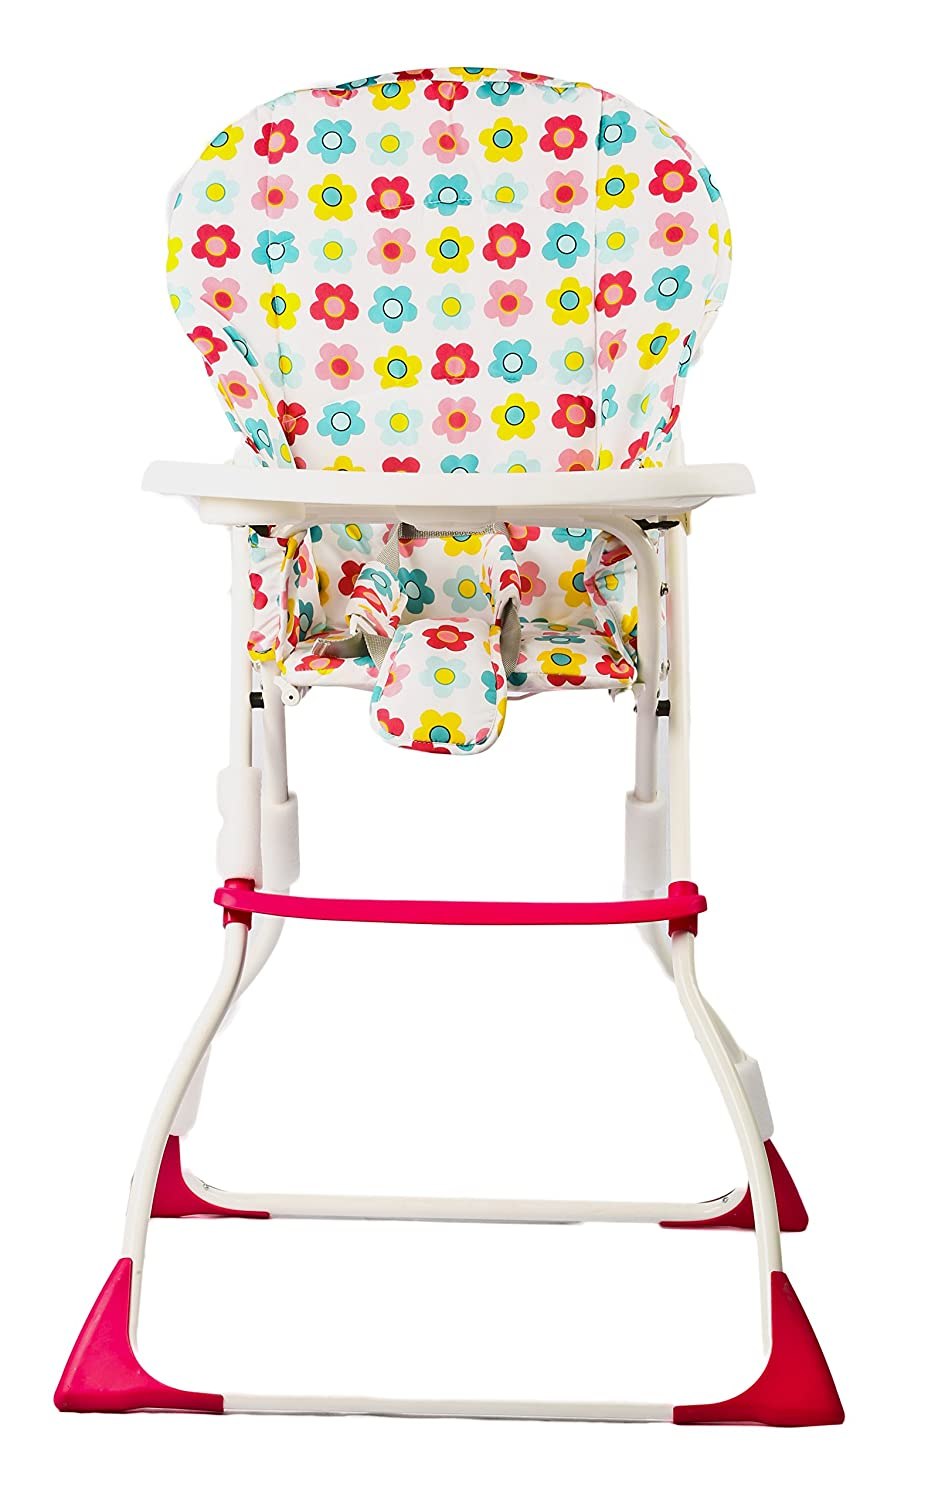 BAYBEE Plastic Baby High Chair, 63x51x97cm (Pink)